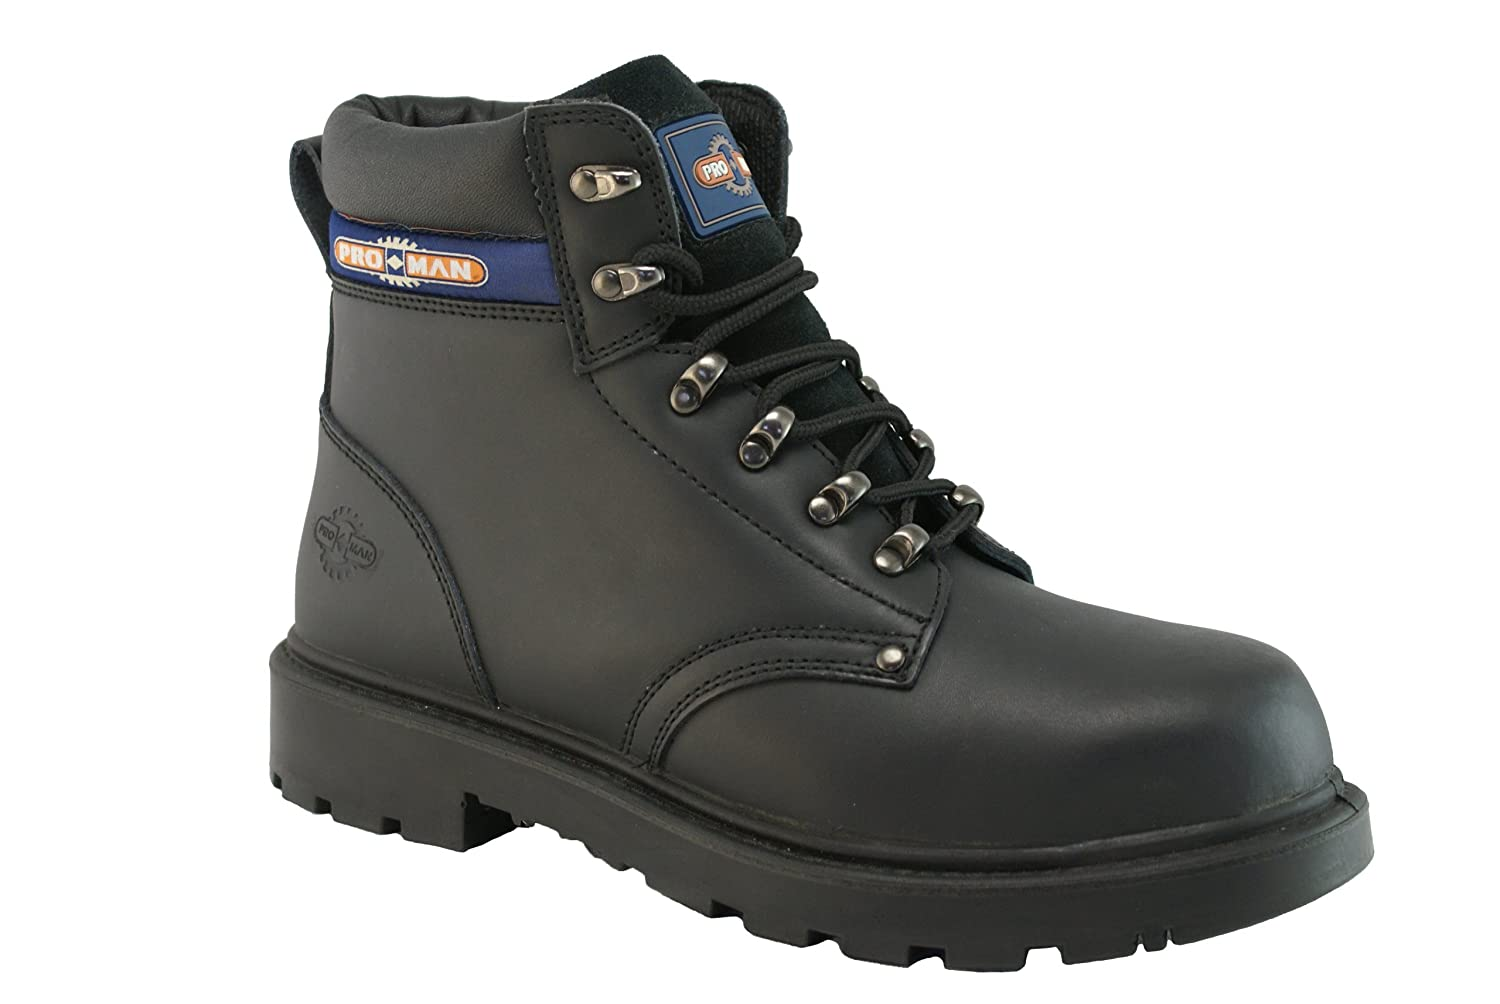 7ee4621df36 Pro-Man Men's Leather Steel Toe Cap Work Boots Pair US Size 9 Black ...